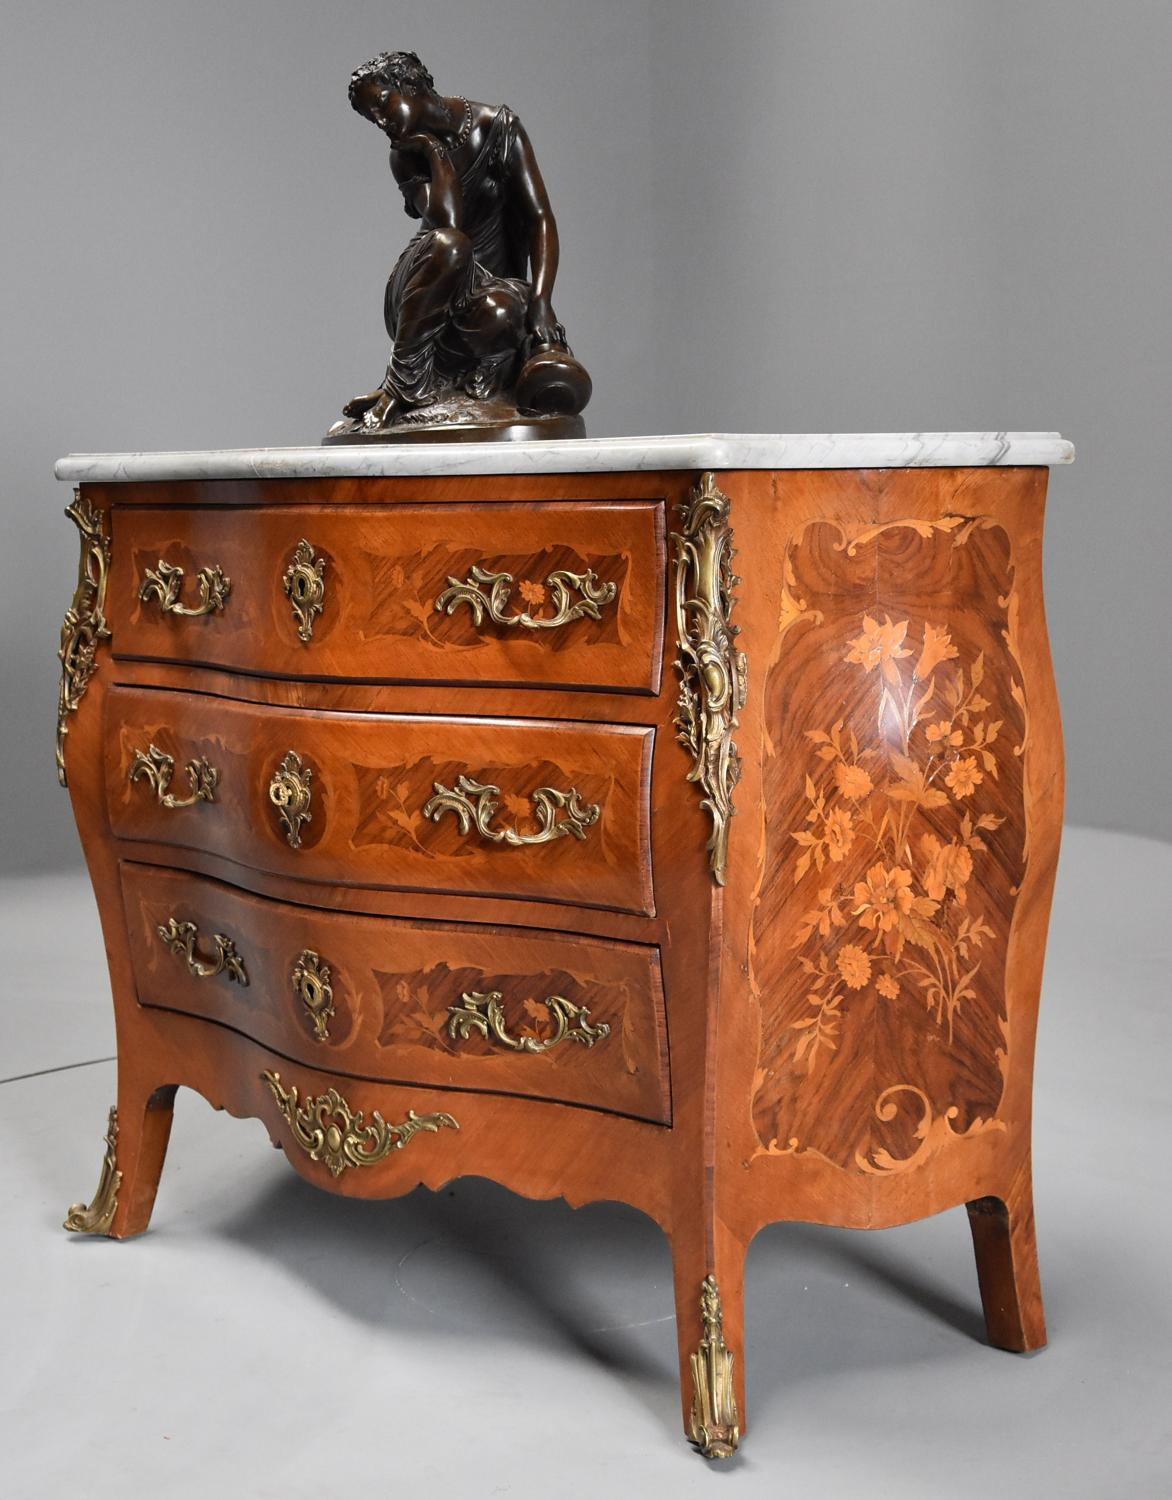 French walnut & Kingwood floral marquetry commode with marble top